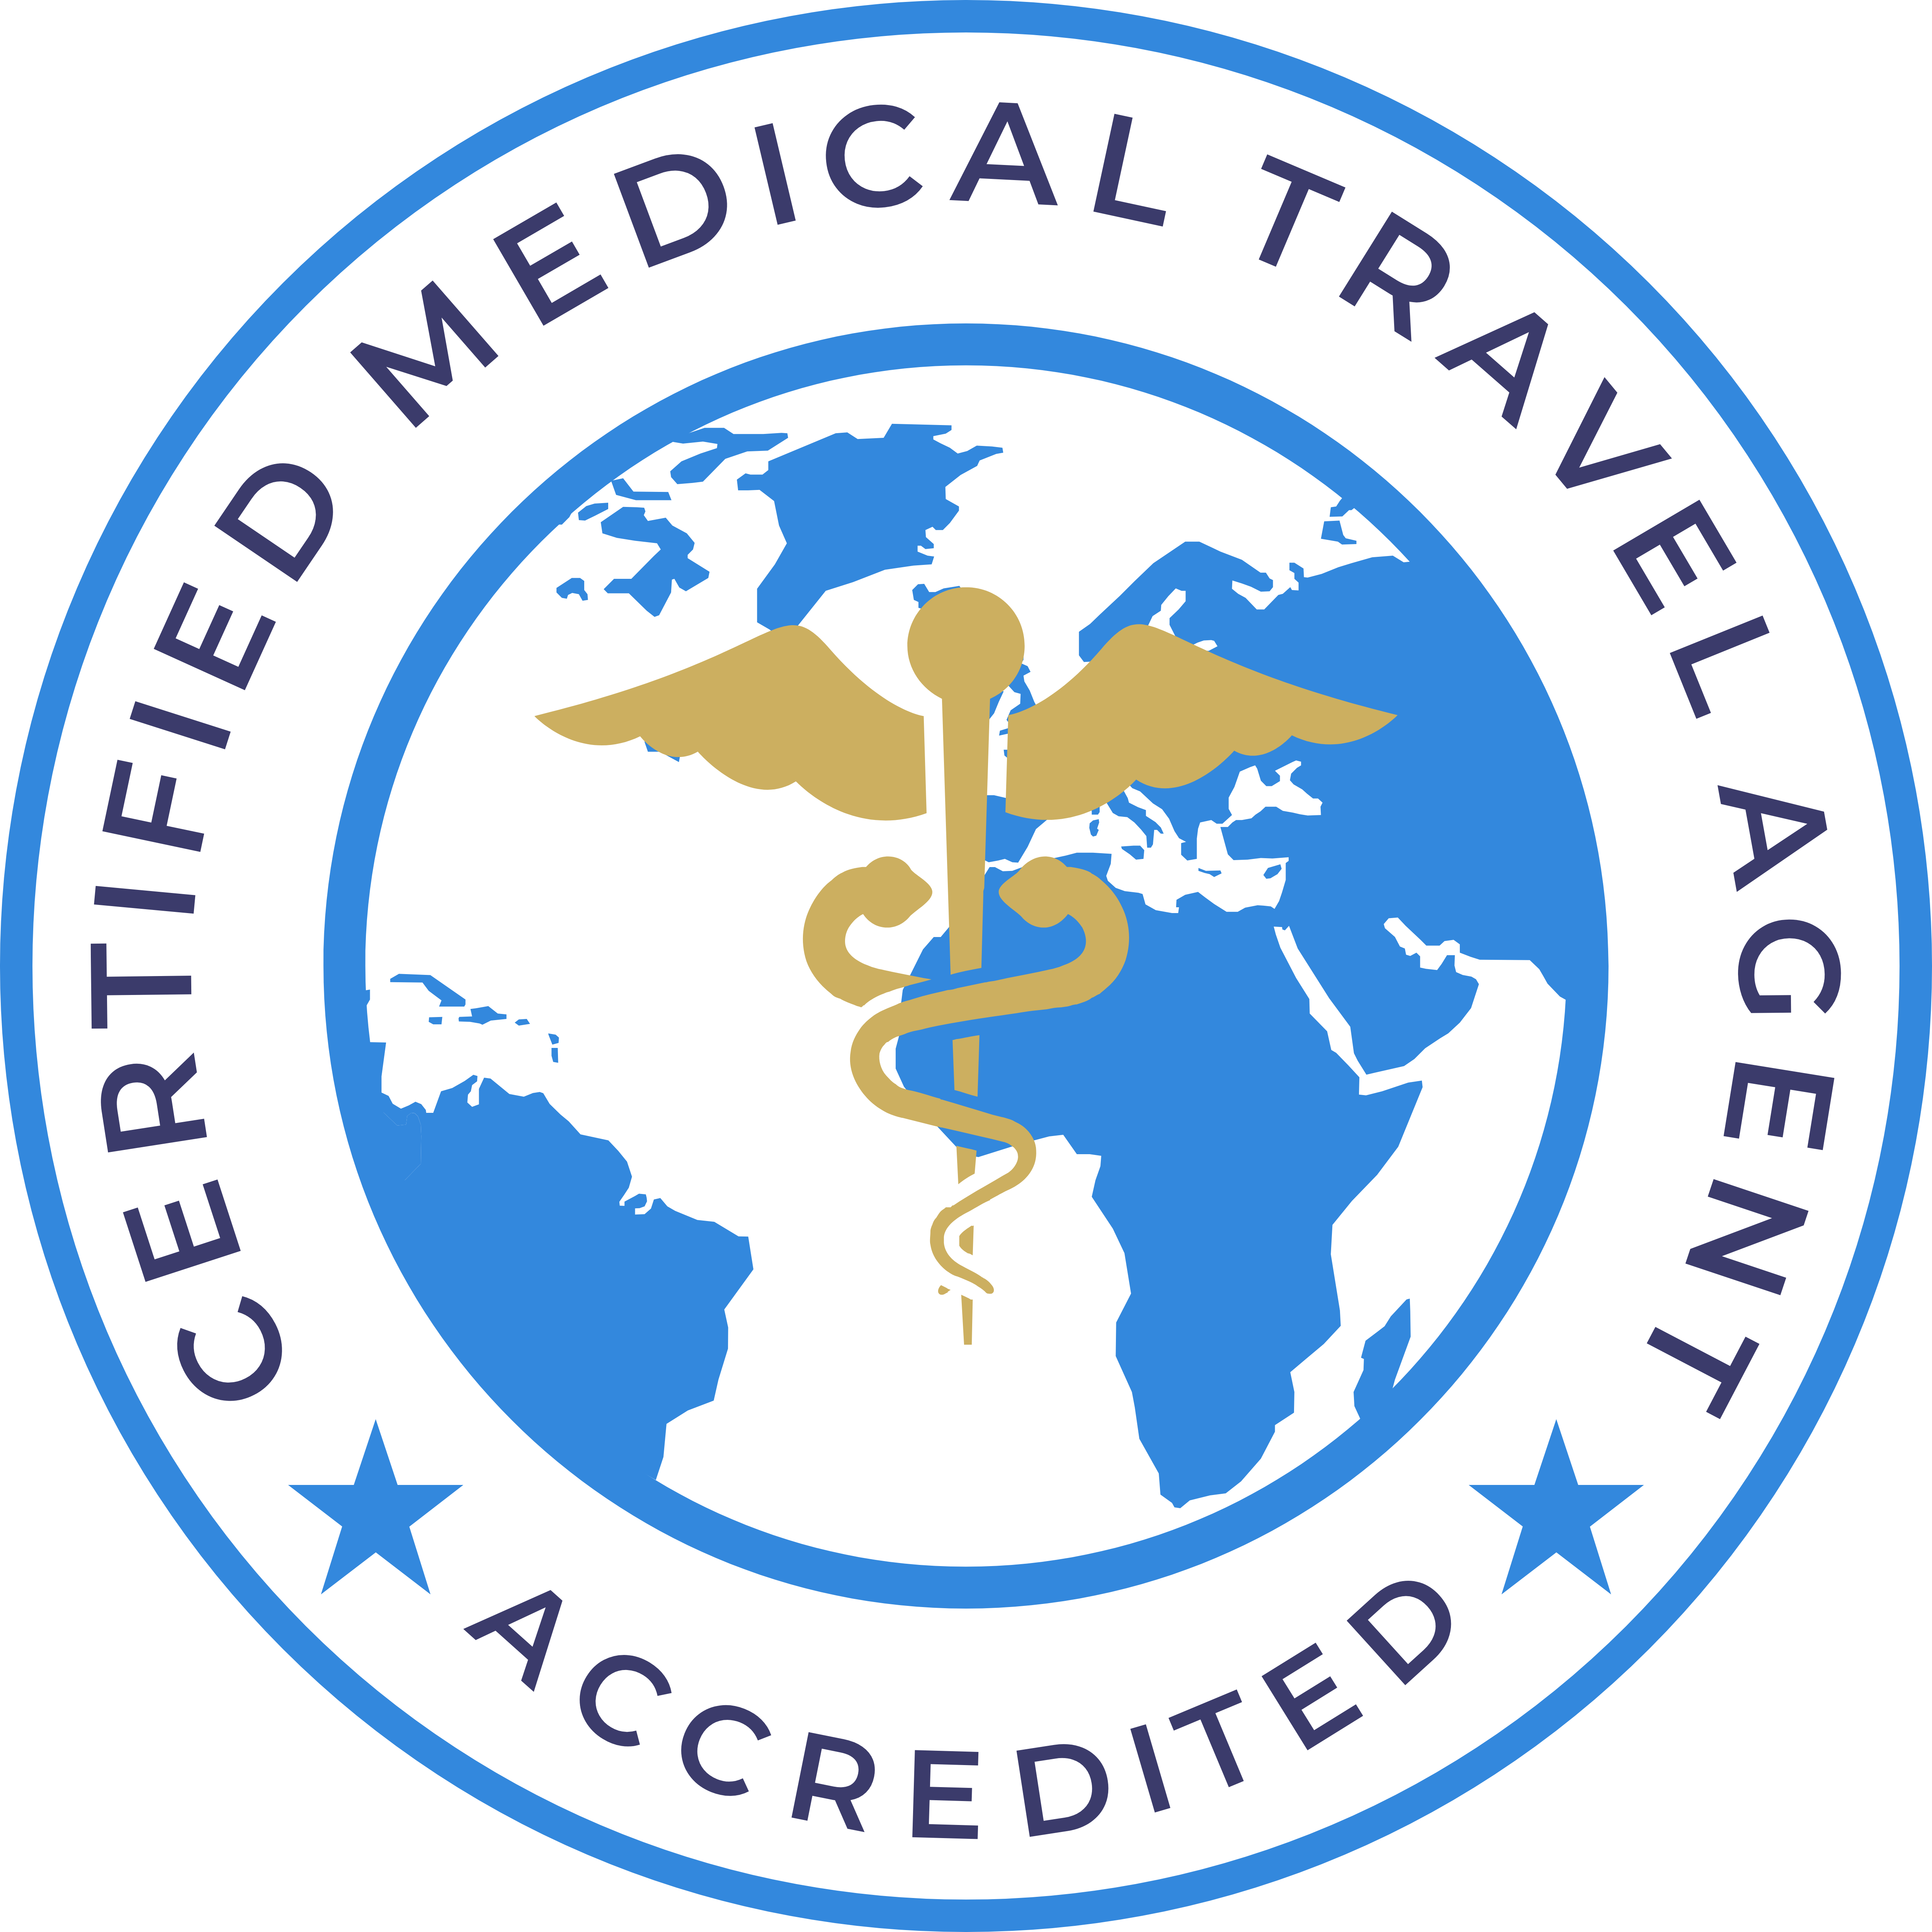 certified medical travel agent